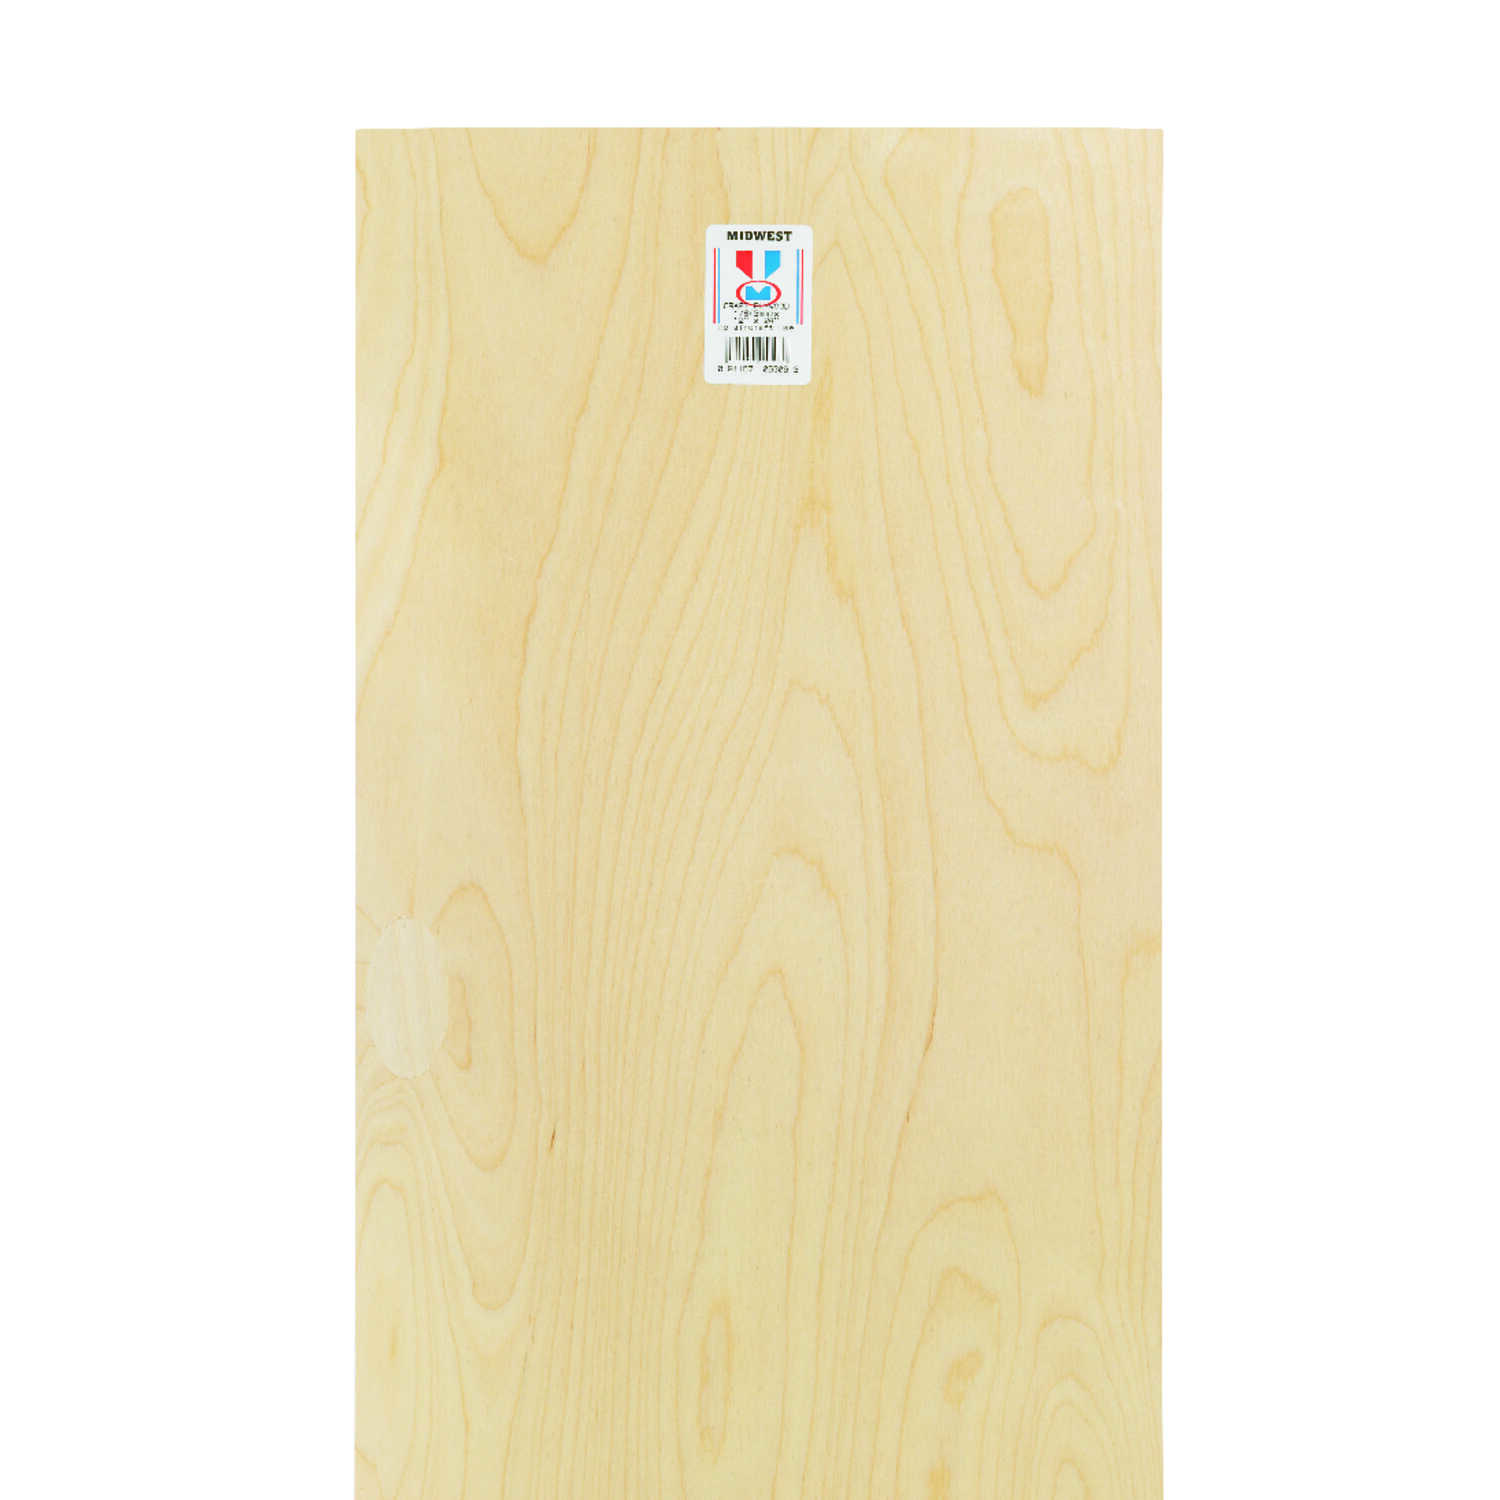 Midwest Products  12 in. W x 1/8 in.  x 24 in. L Plywood